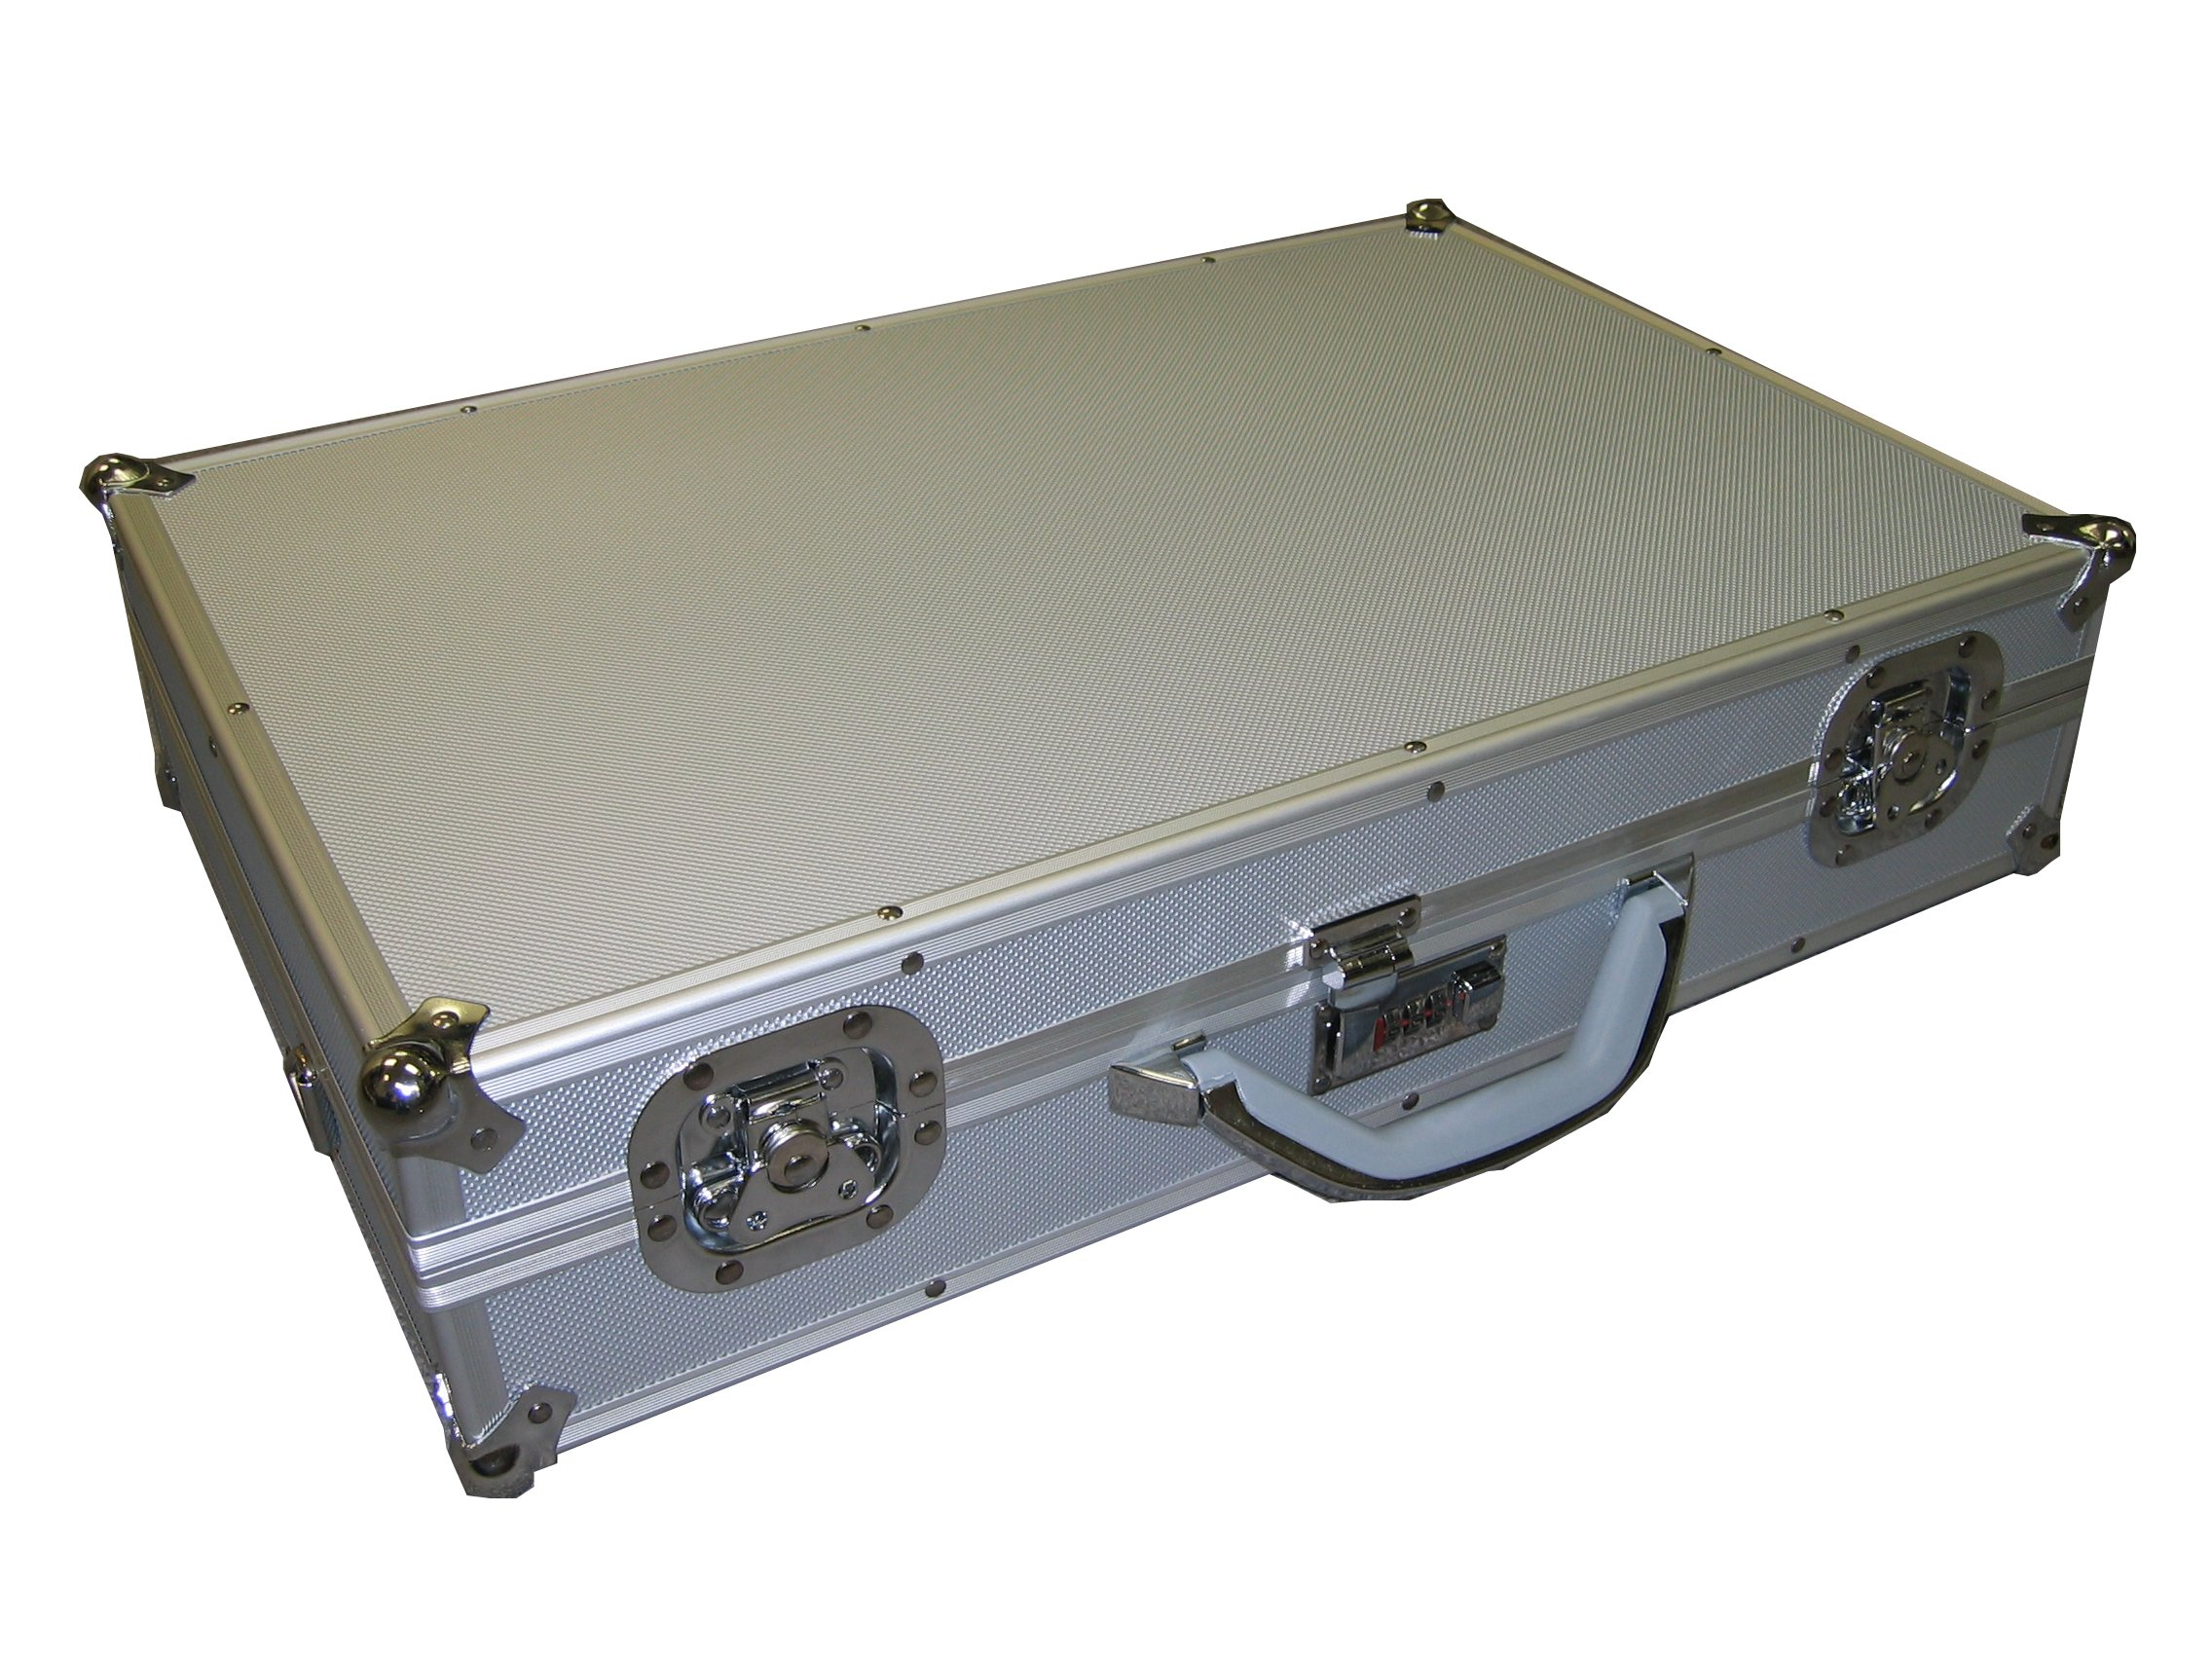 Silver Aluminum Multi purpose Case For Tool/Camera/Hardware and More With Combination Lock and Foam Ship to CANADA&USA